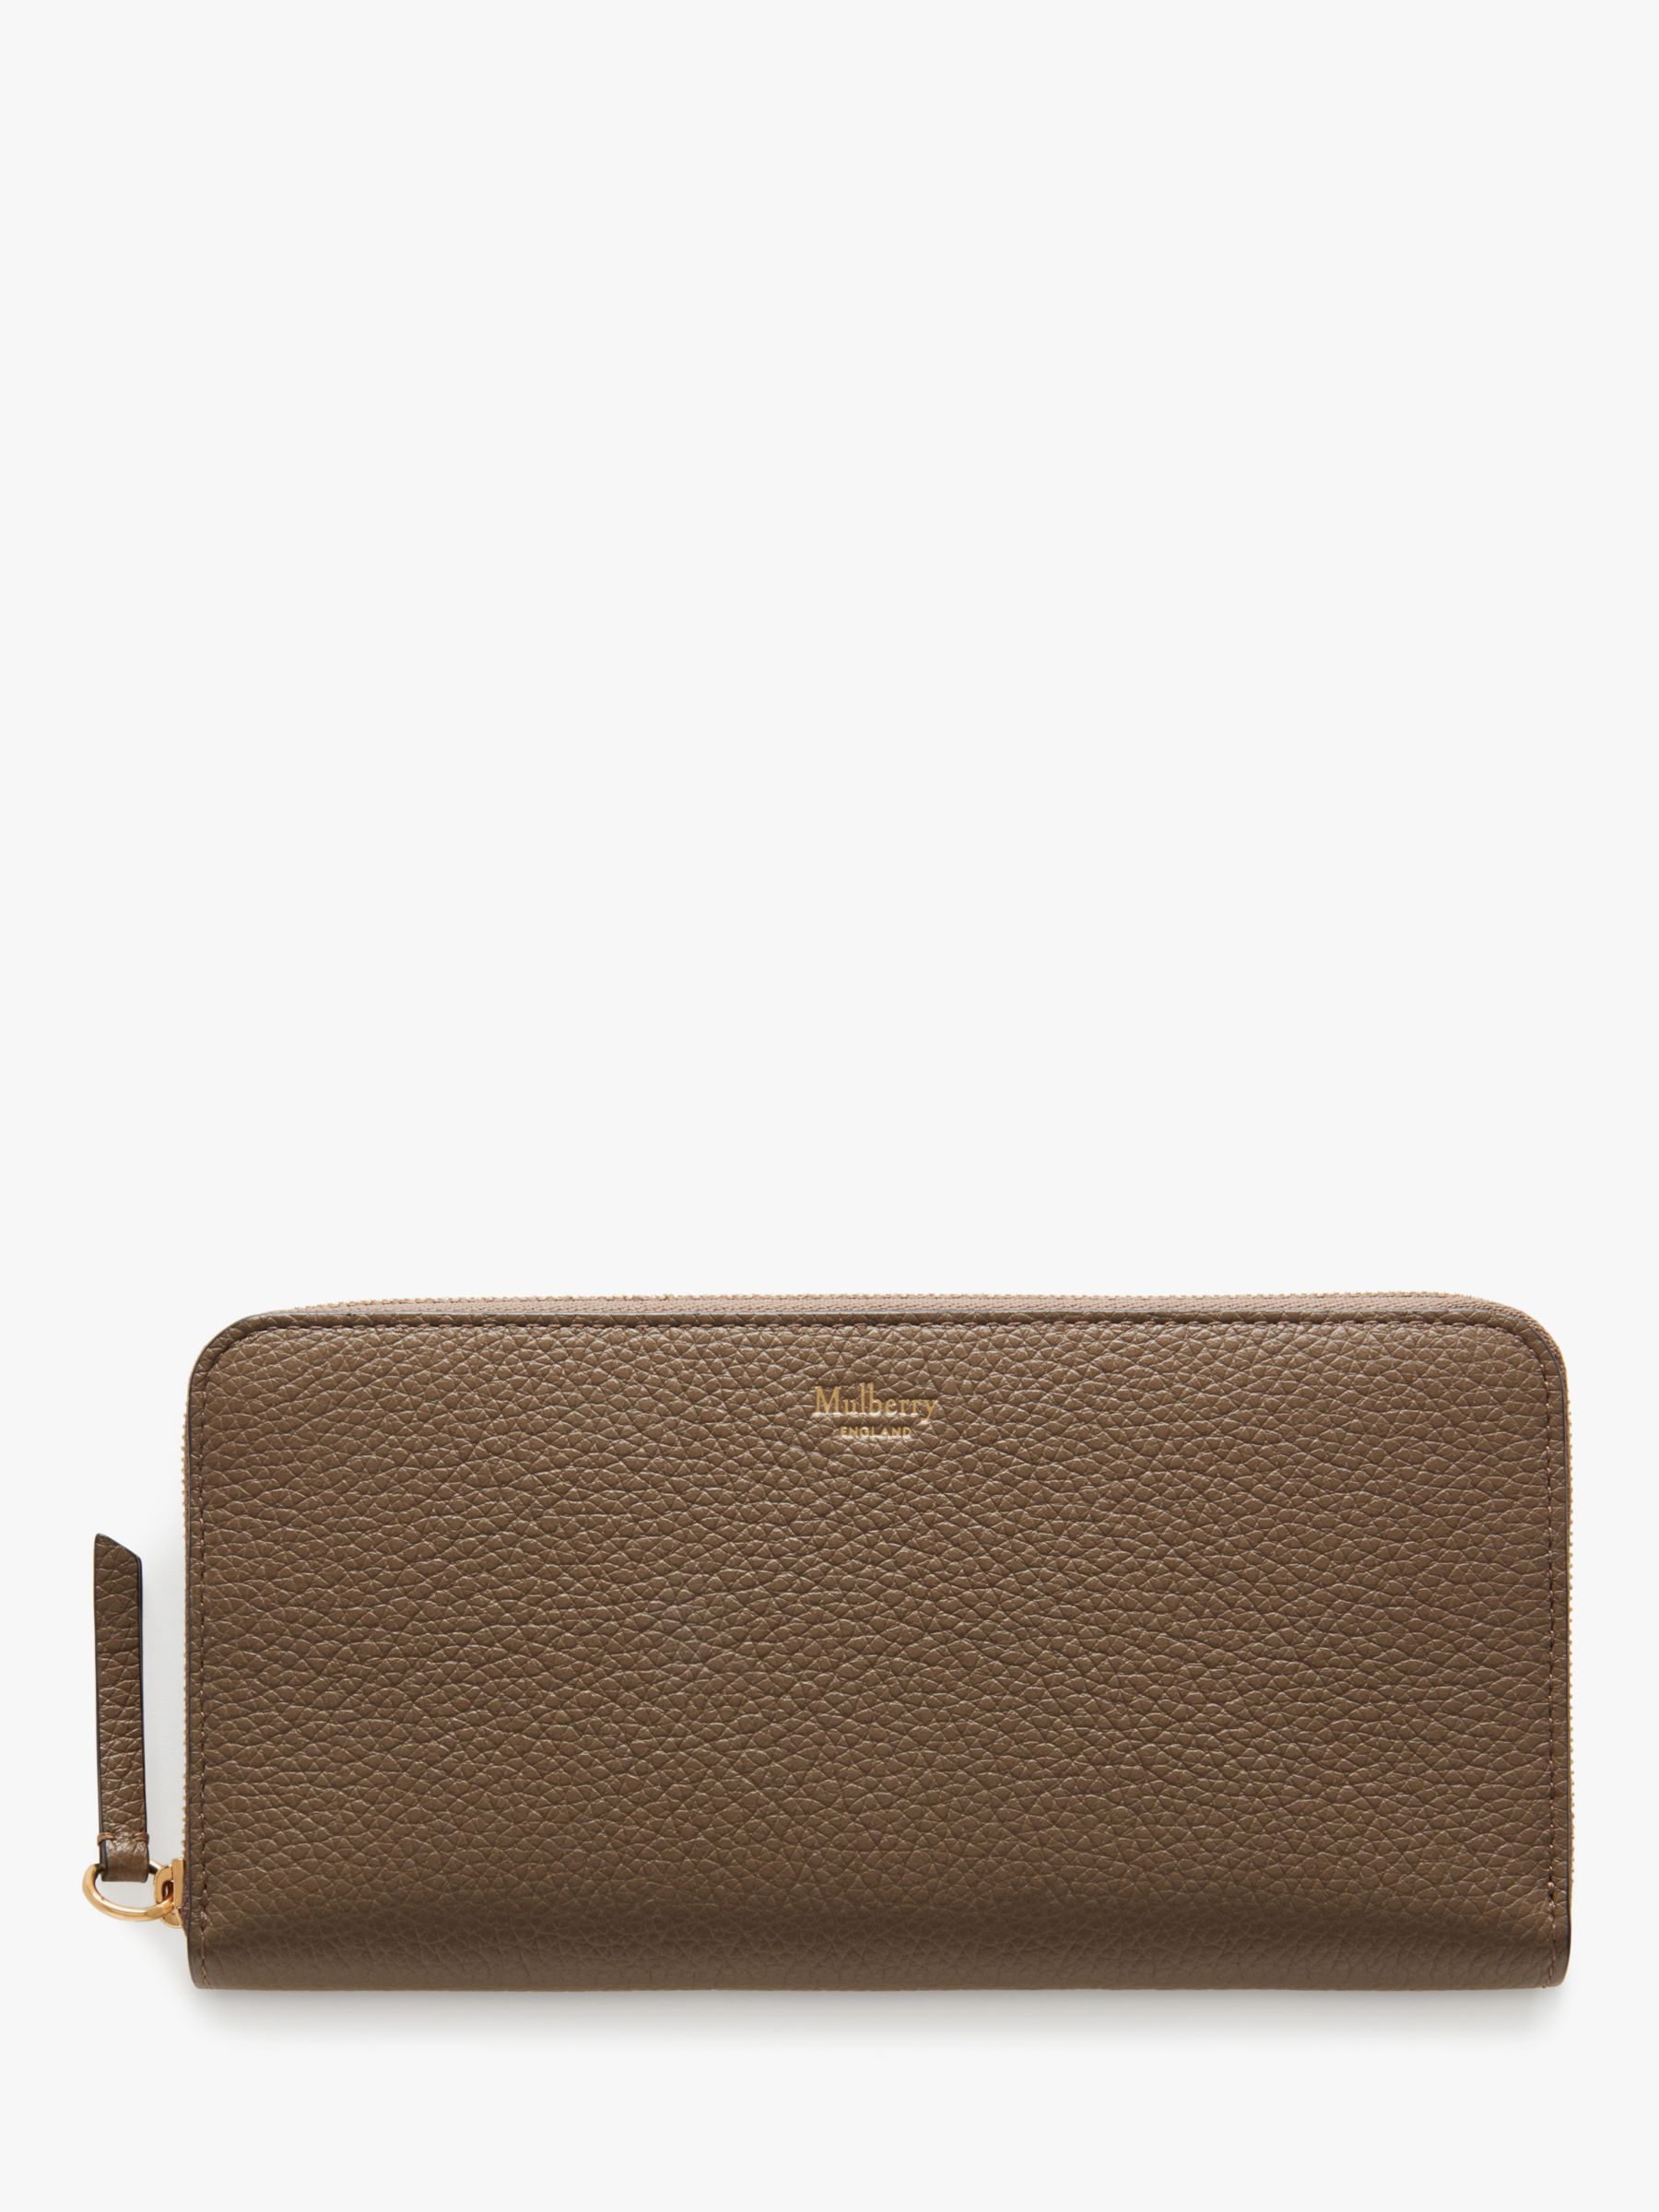 58b701615b2 Mulberry Small Classic Grain Leather 8 Card Zip Around Wallet at John Lewis  & Partners